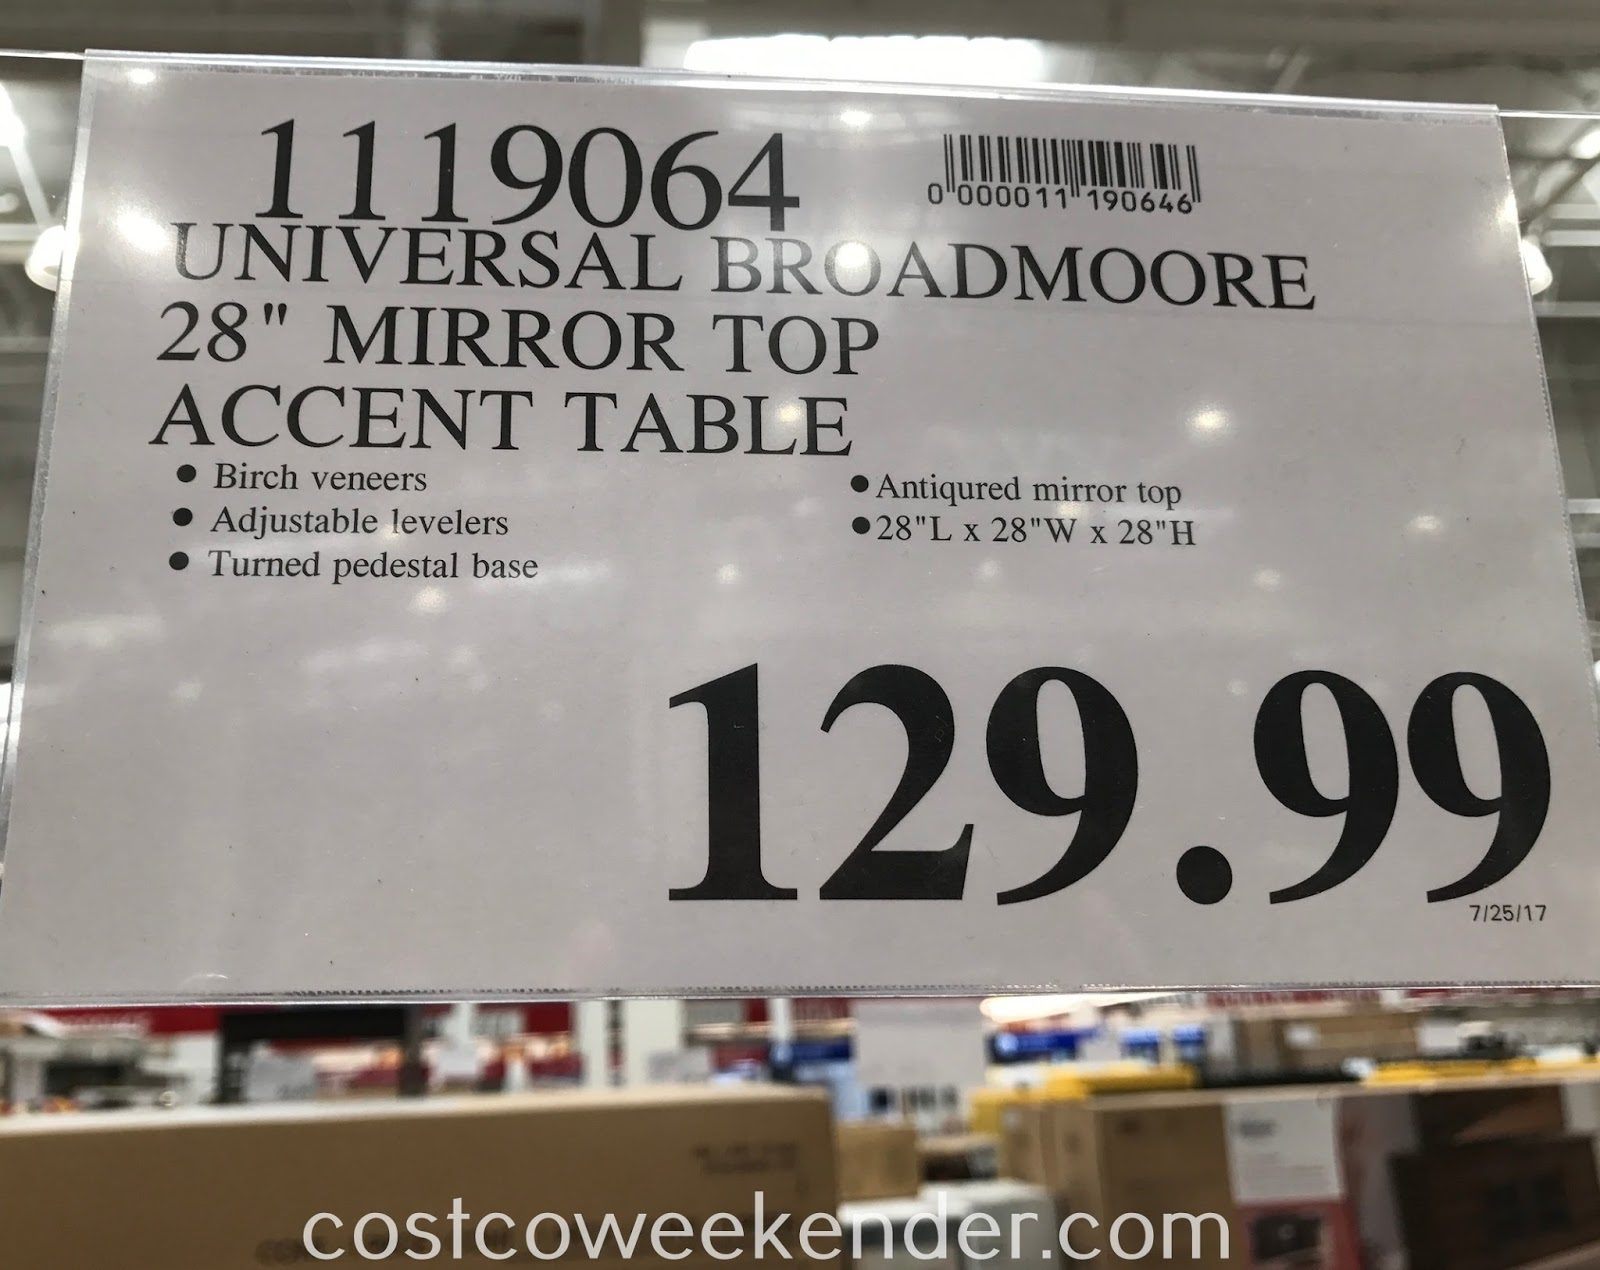 Deal for the Universal Broadmoore Mirror Top Accent Table at Costco